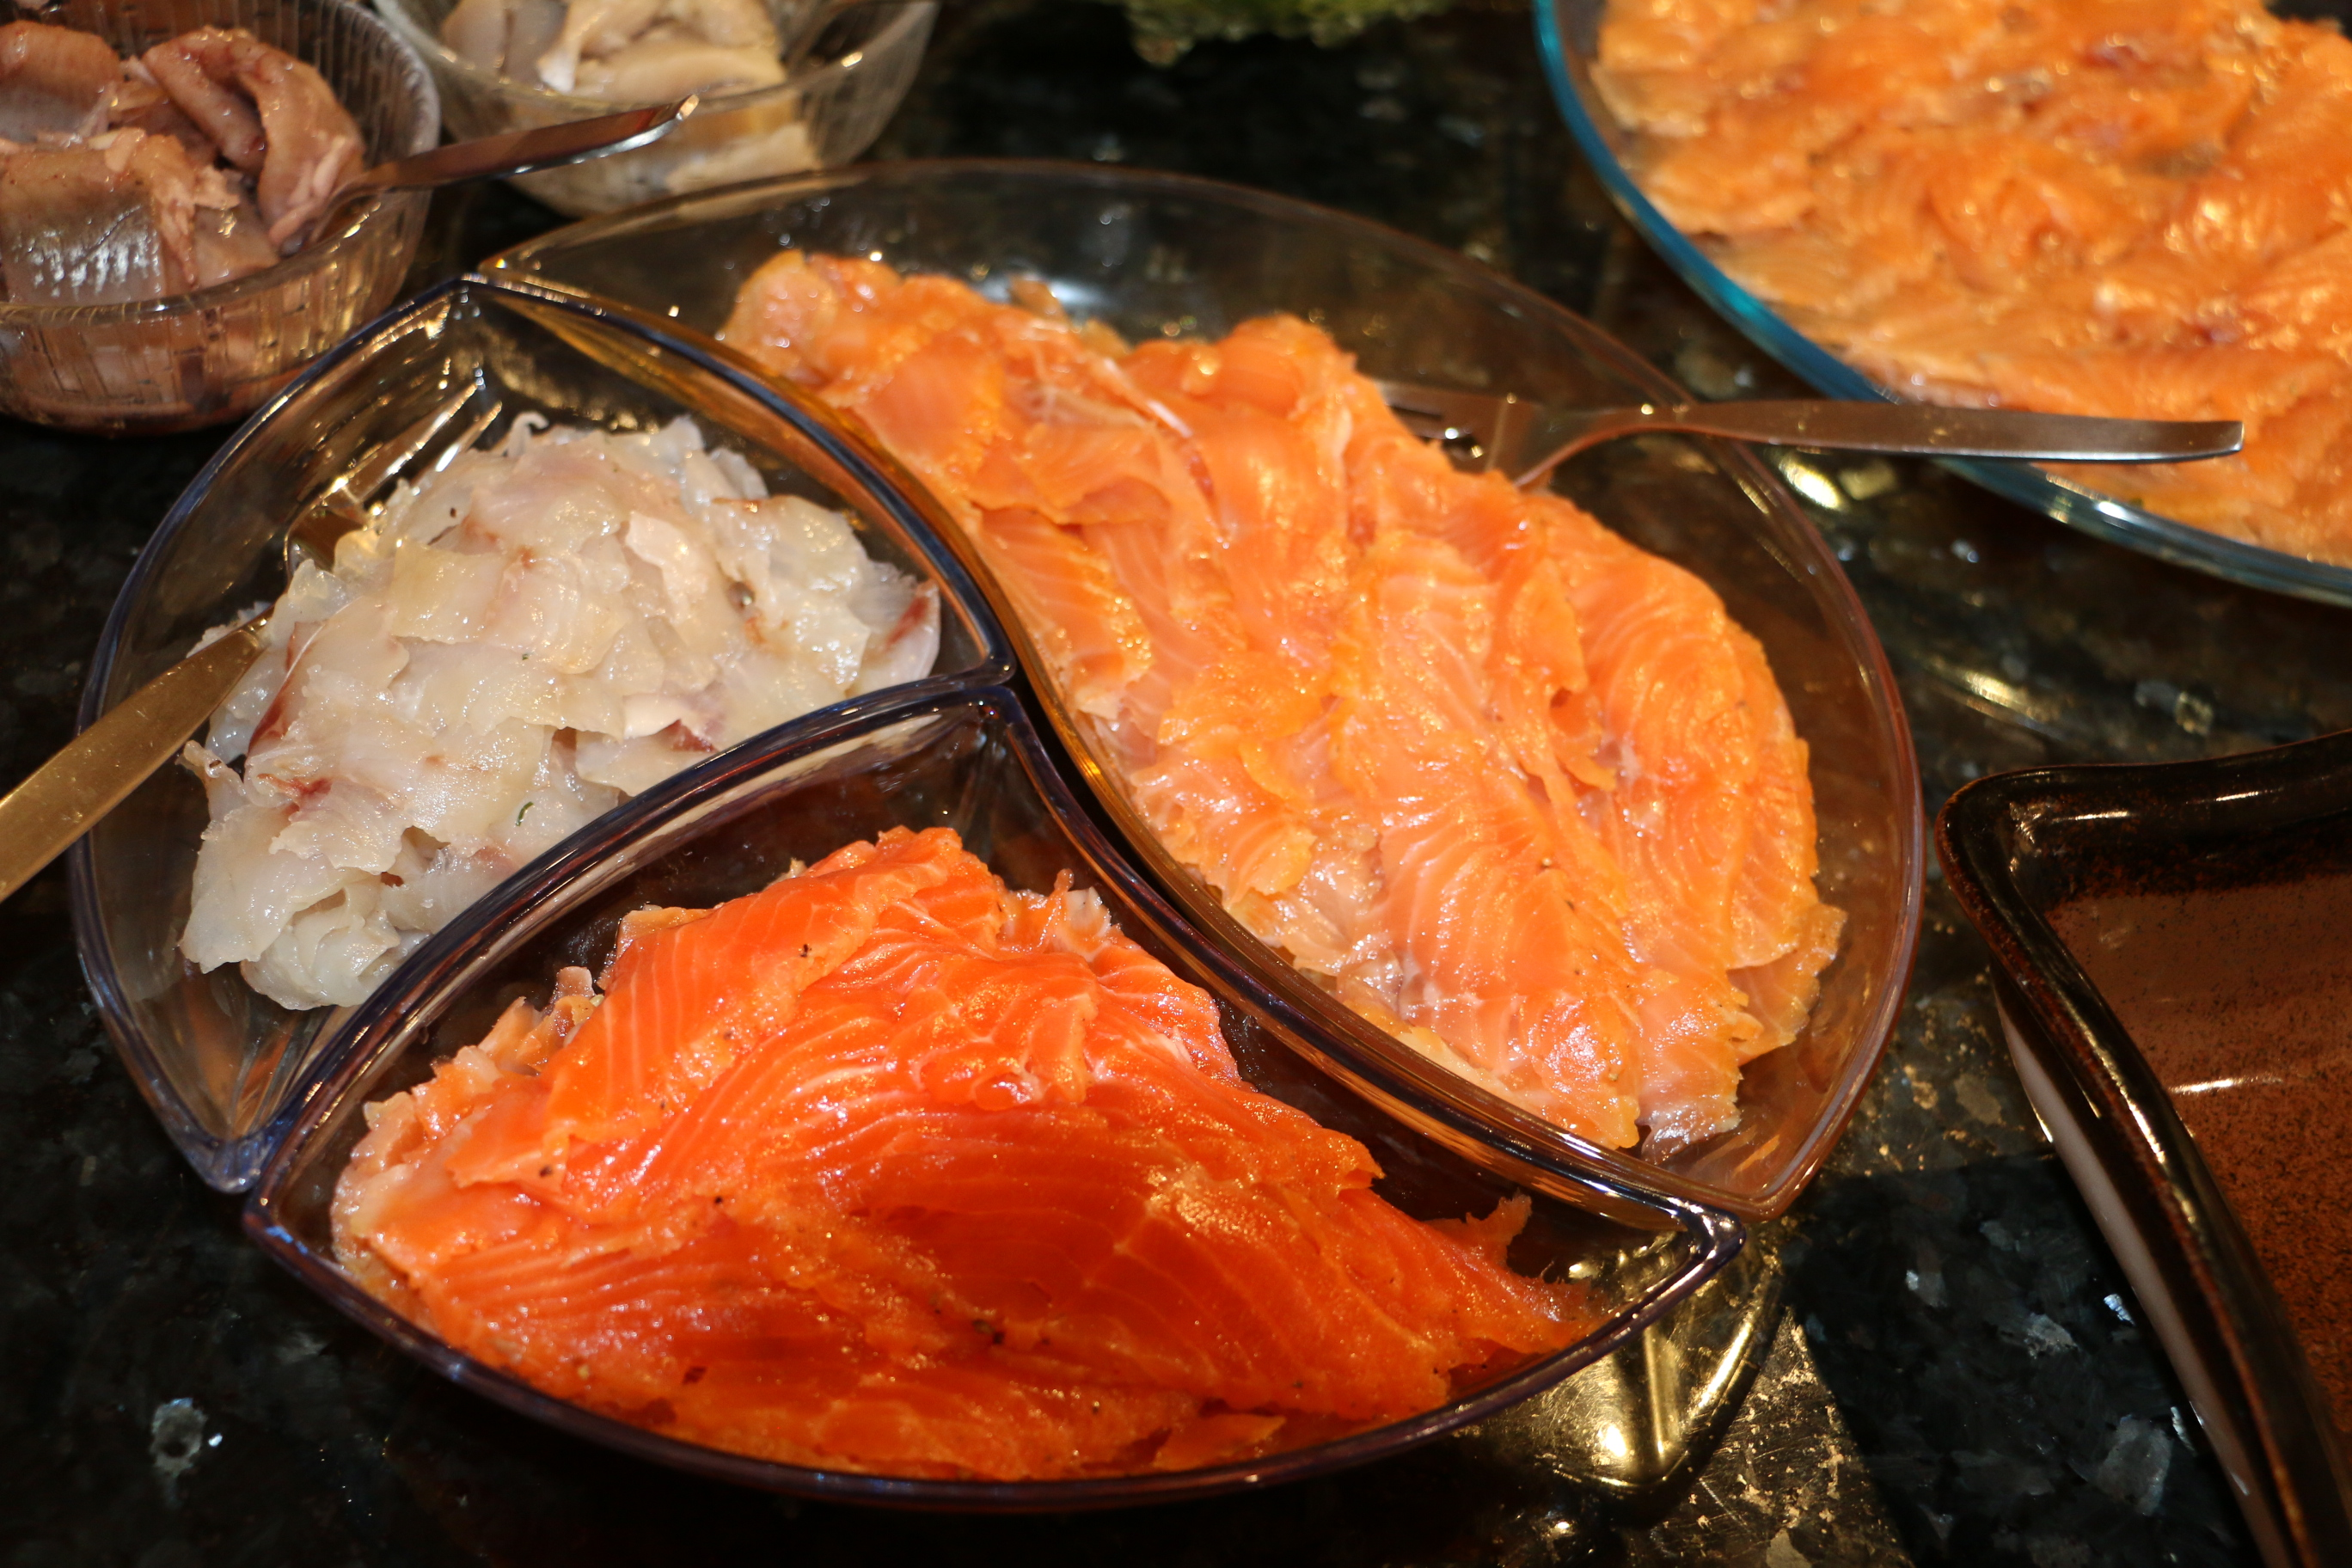 Gravad sea bass, cold smoked trout, and cold smoked salmon